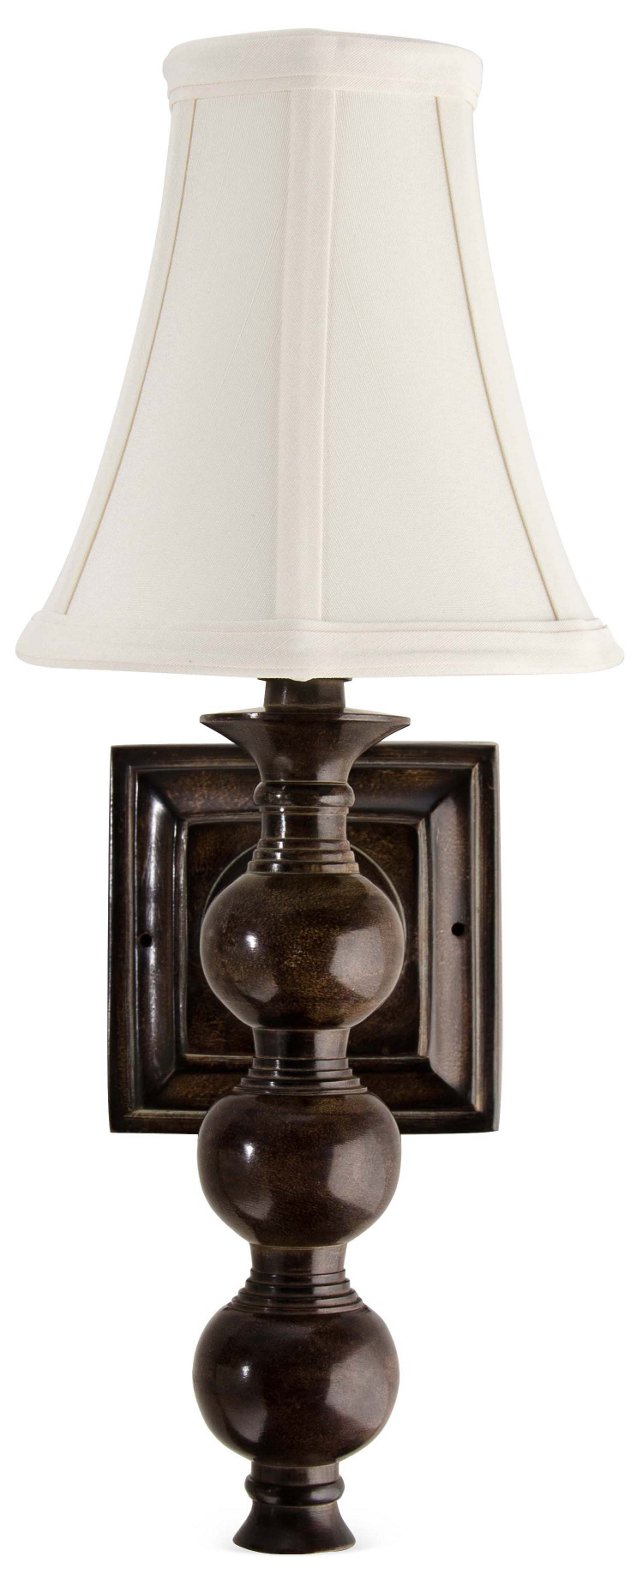 Luna 1-Light Wall Sconce Set, Chocolate